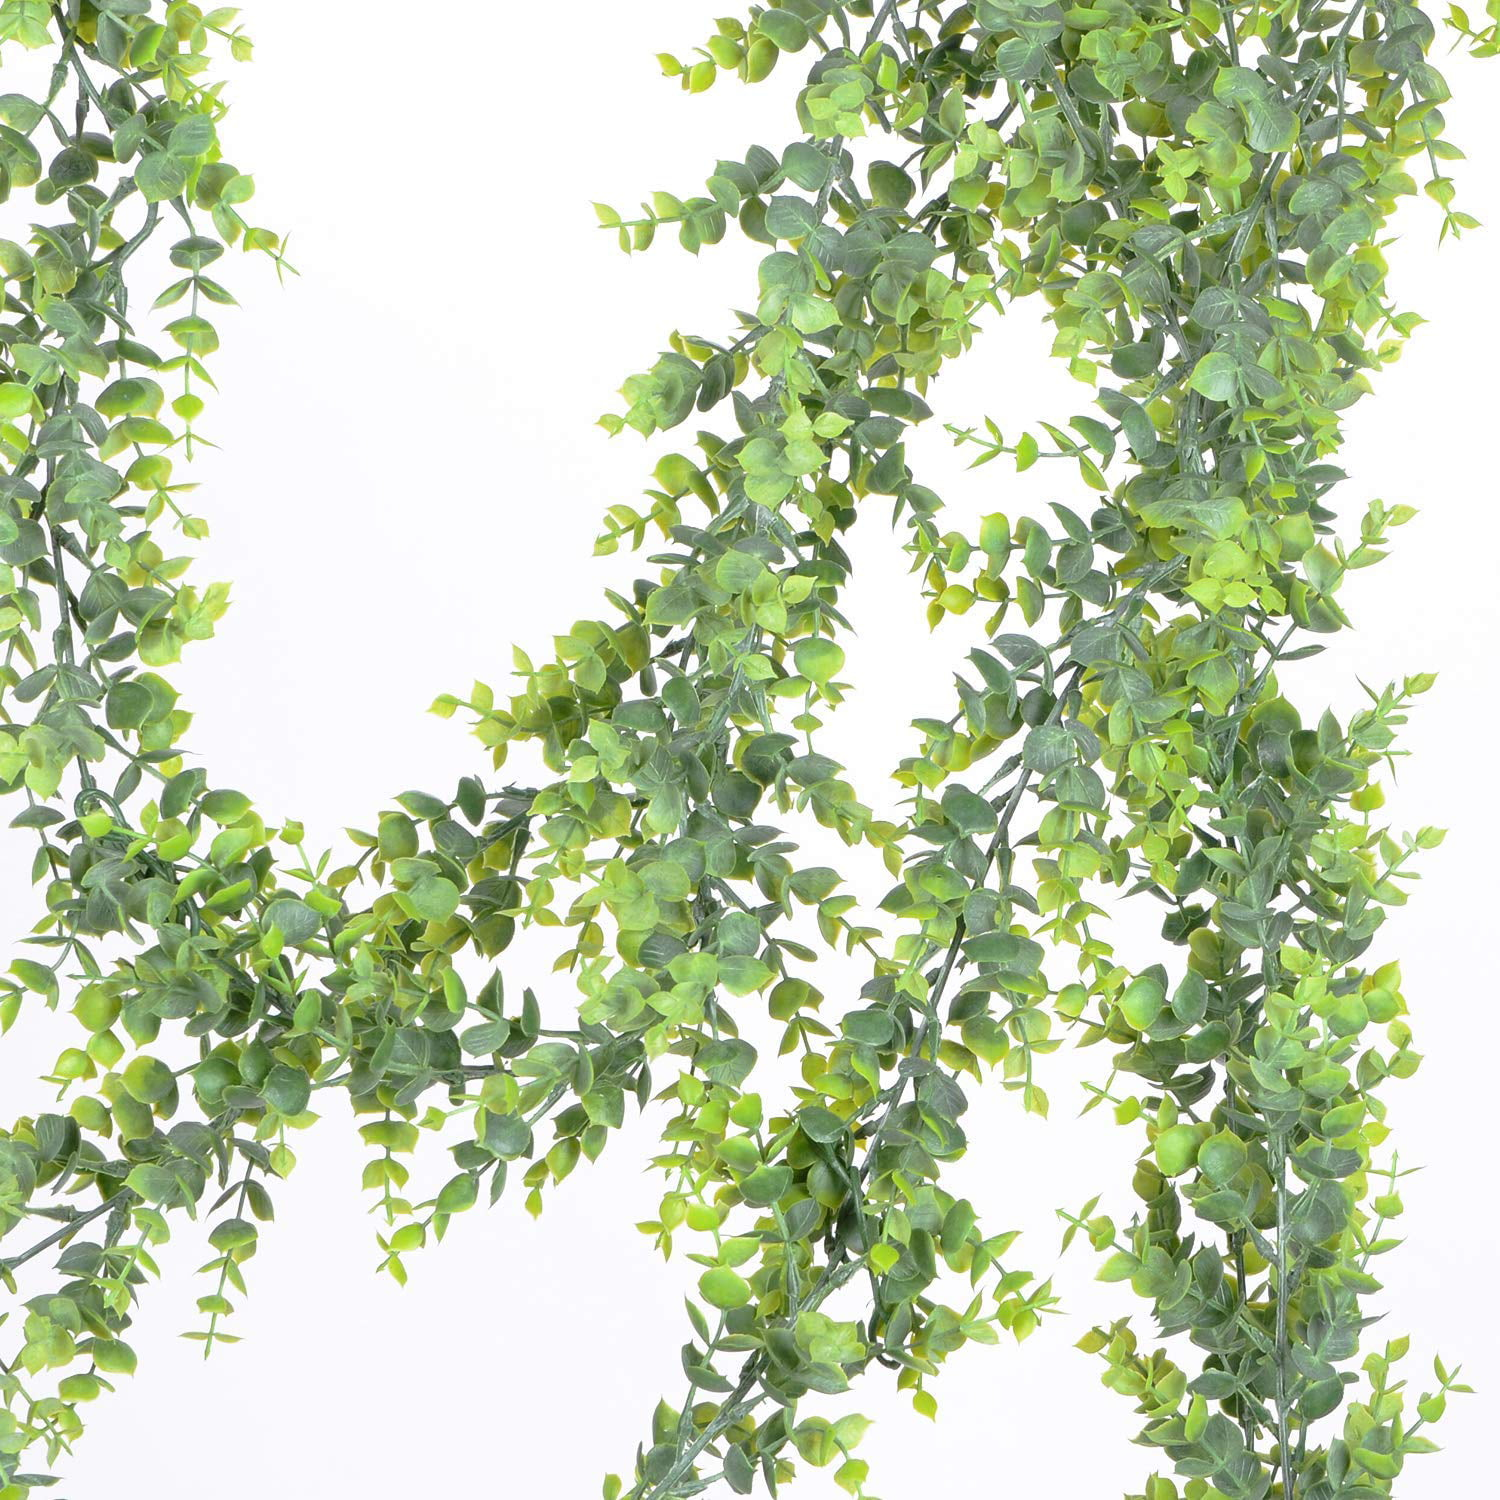 2 Pack Faux Eucalyptus Garland Artificial Vines Fake Eucalyptus Greenery Garland Wedding Backdrop Arch Wall Decor 6 Feet Pcs Fake Hanging Plant For Table Festival Party Decorations Walmart Com Walmart Com